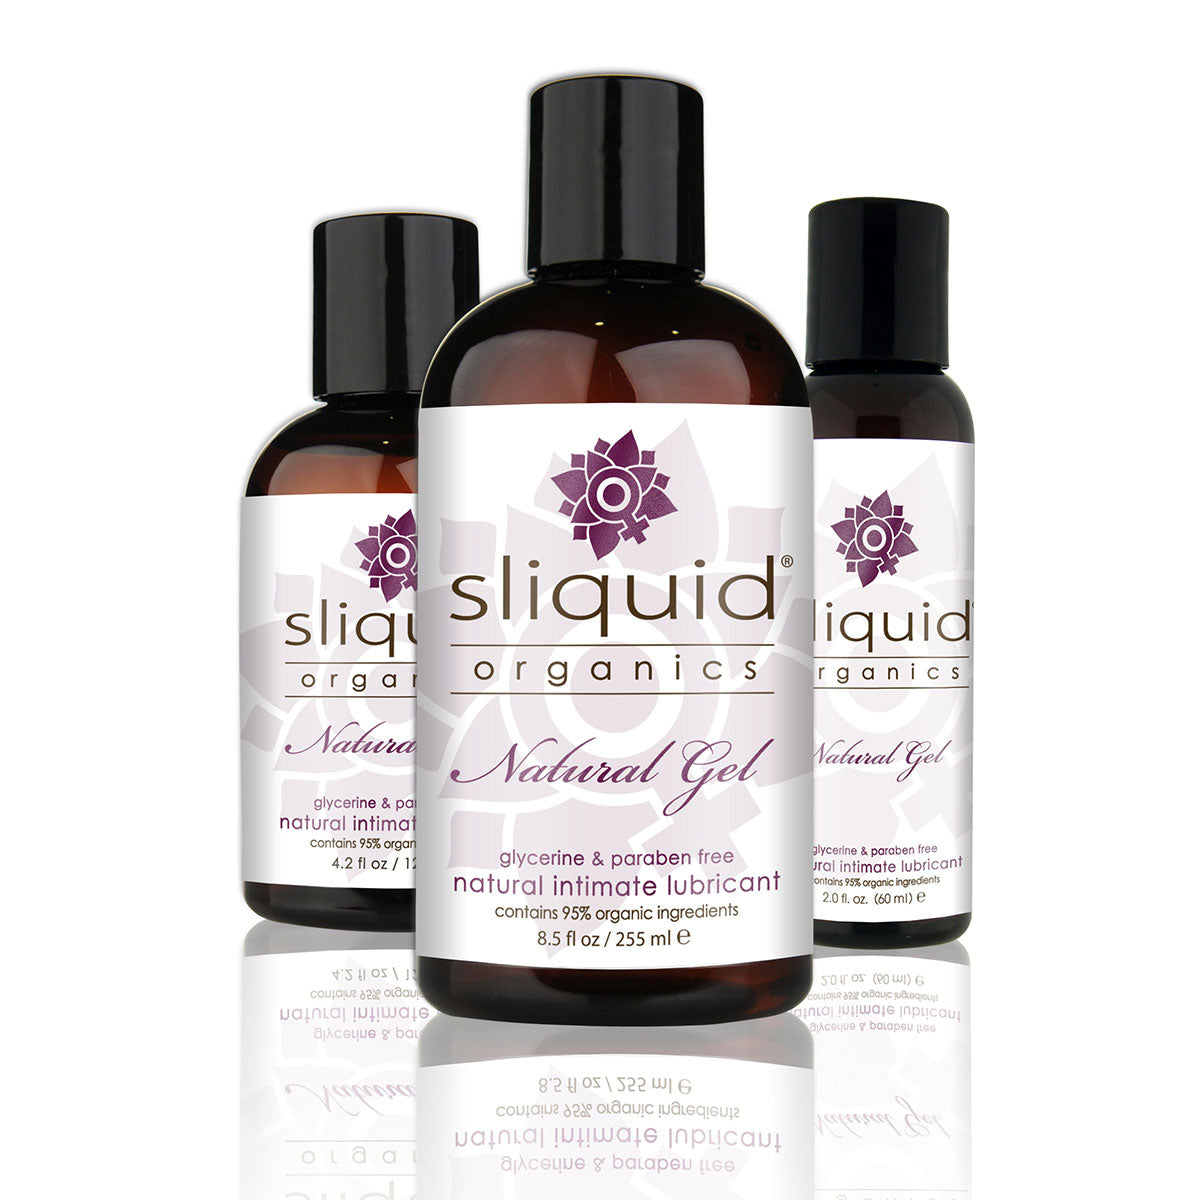 Sliquid Organics Natural Gel - Ultra-Thick Botanically Infused Water-Based Lubricant - 2oz